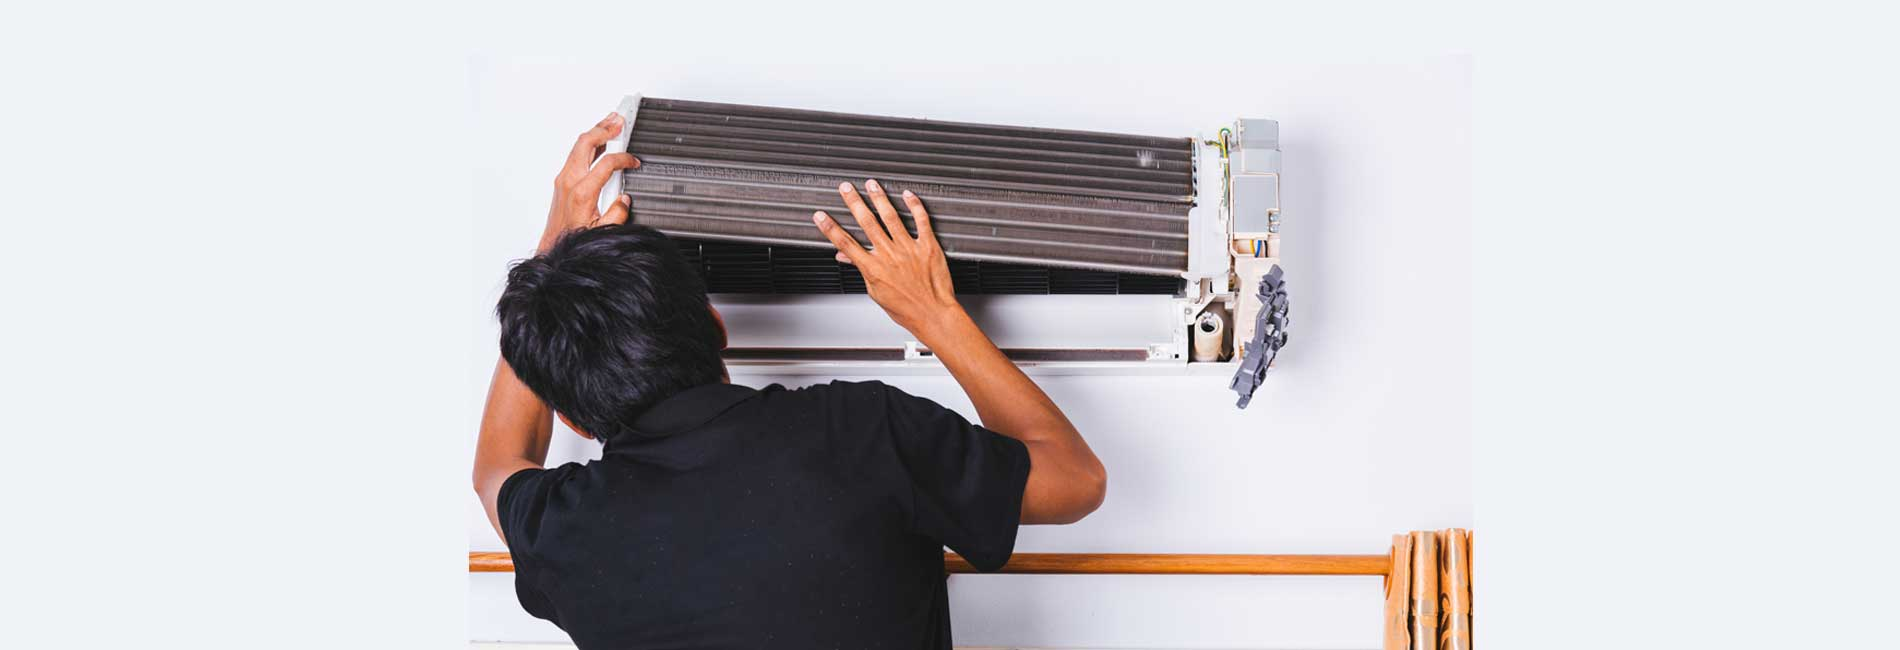 Air Conditioner Repair in Neelankarai